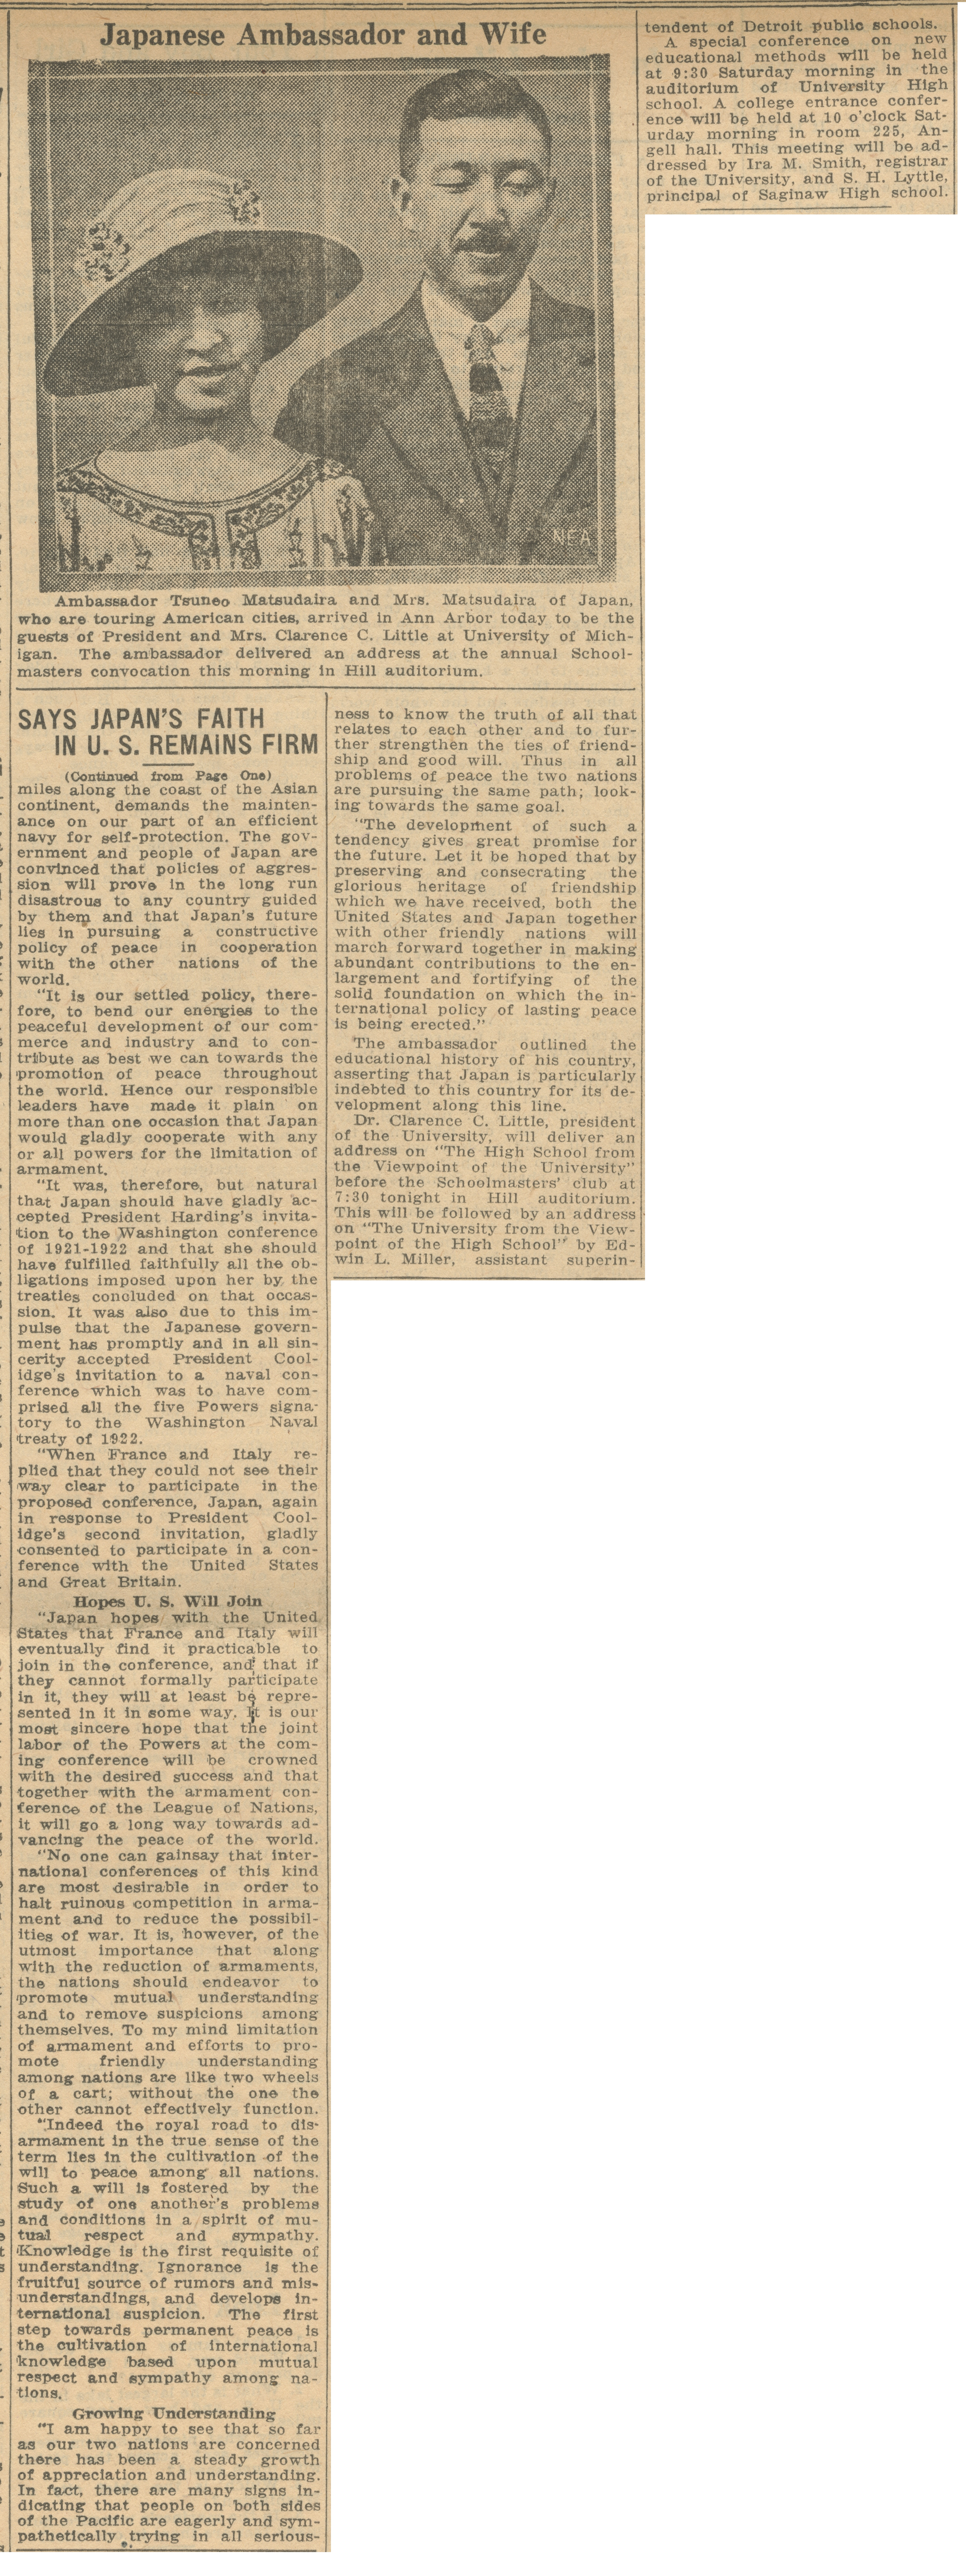 Says Japan's Faith In U.S. Remains Firm: Ambassador, In Address At University, Deplores Immigration Clause, Sees Solid Friendship; Envoy Hopes For Amicable Agreement On Only Barrier To Good Will - April 29, 1927 image